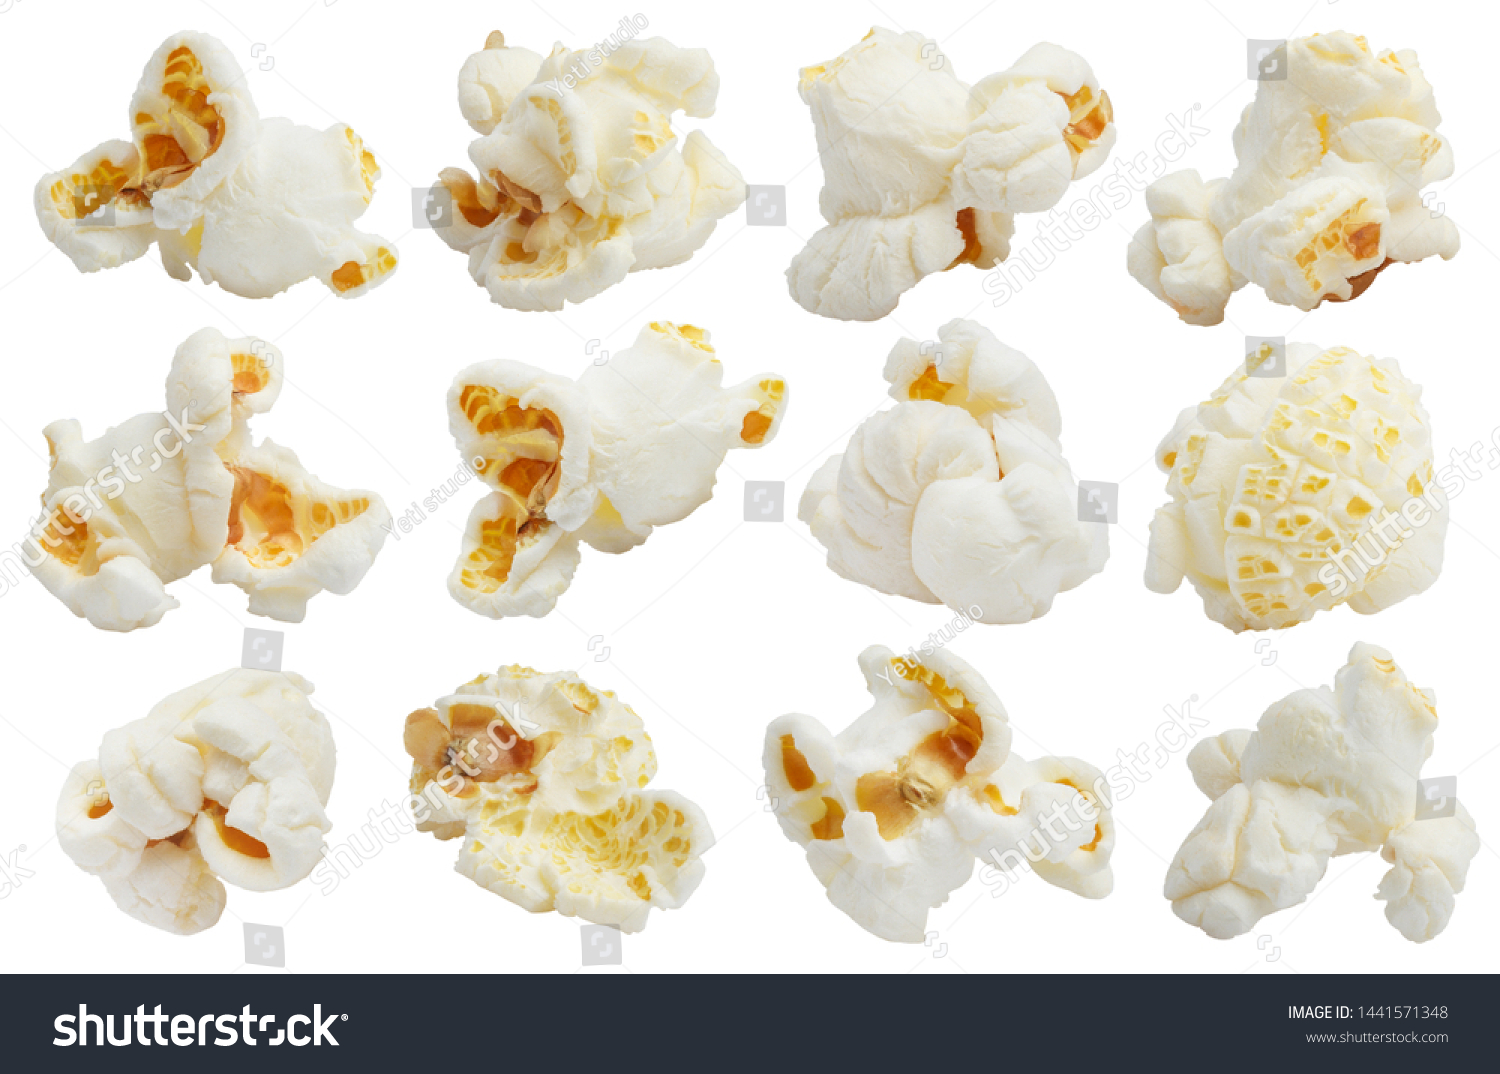 Rich collection of popcorn, isolated on white background #1441571348